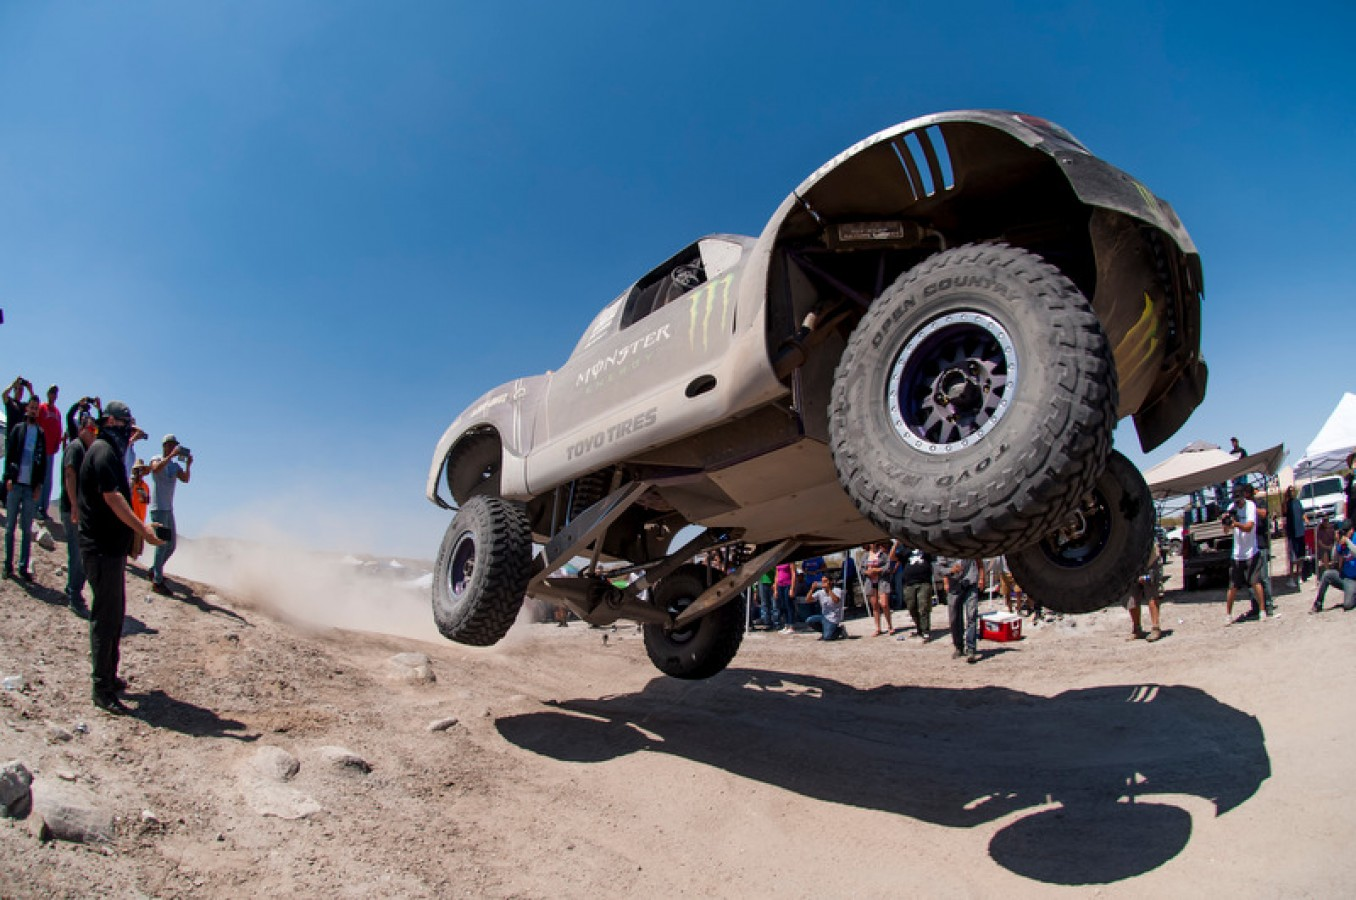 Monster athletes compete in the Baja 500 2016 season in Ensenada, Baja California, Mexico.